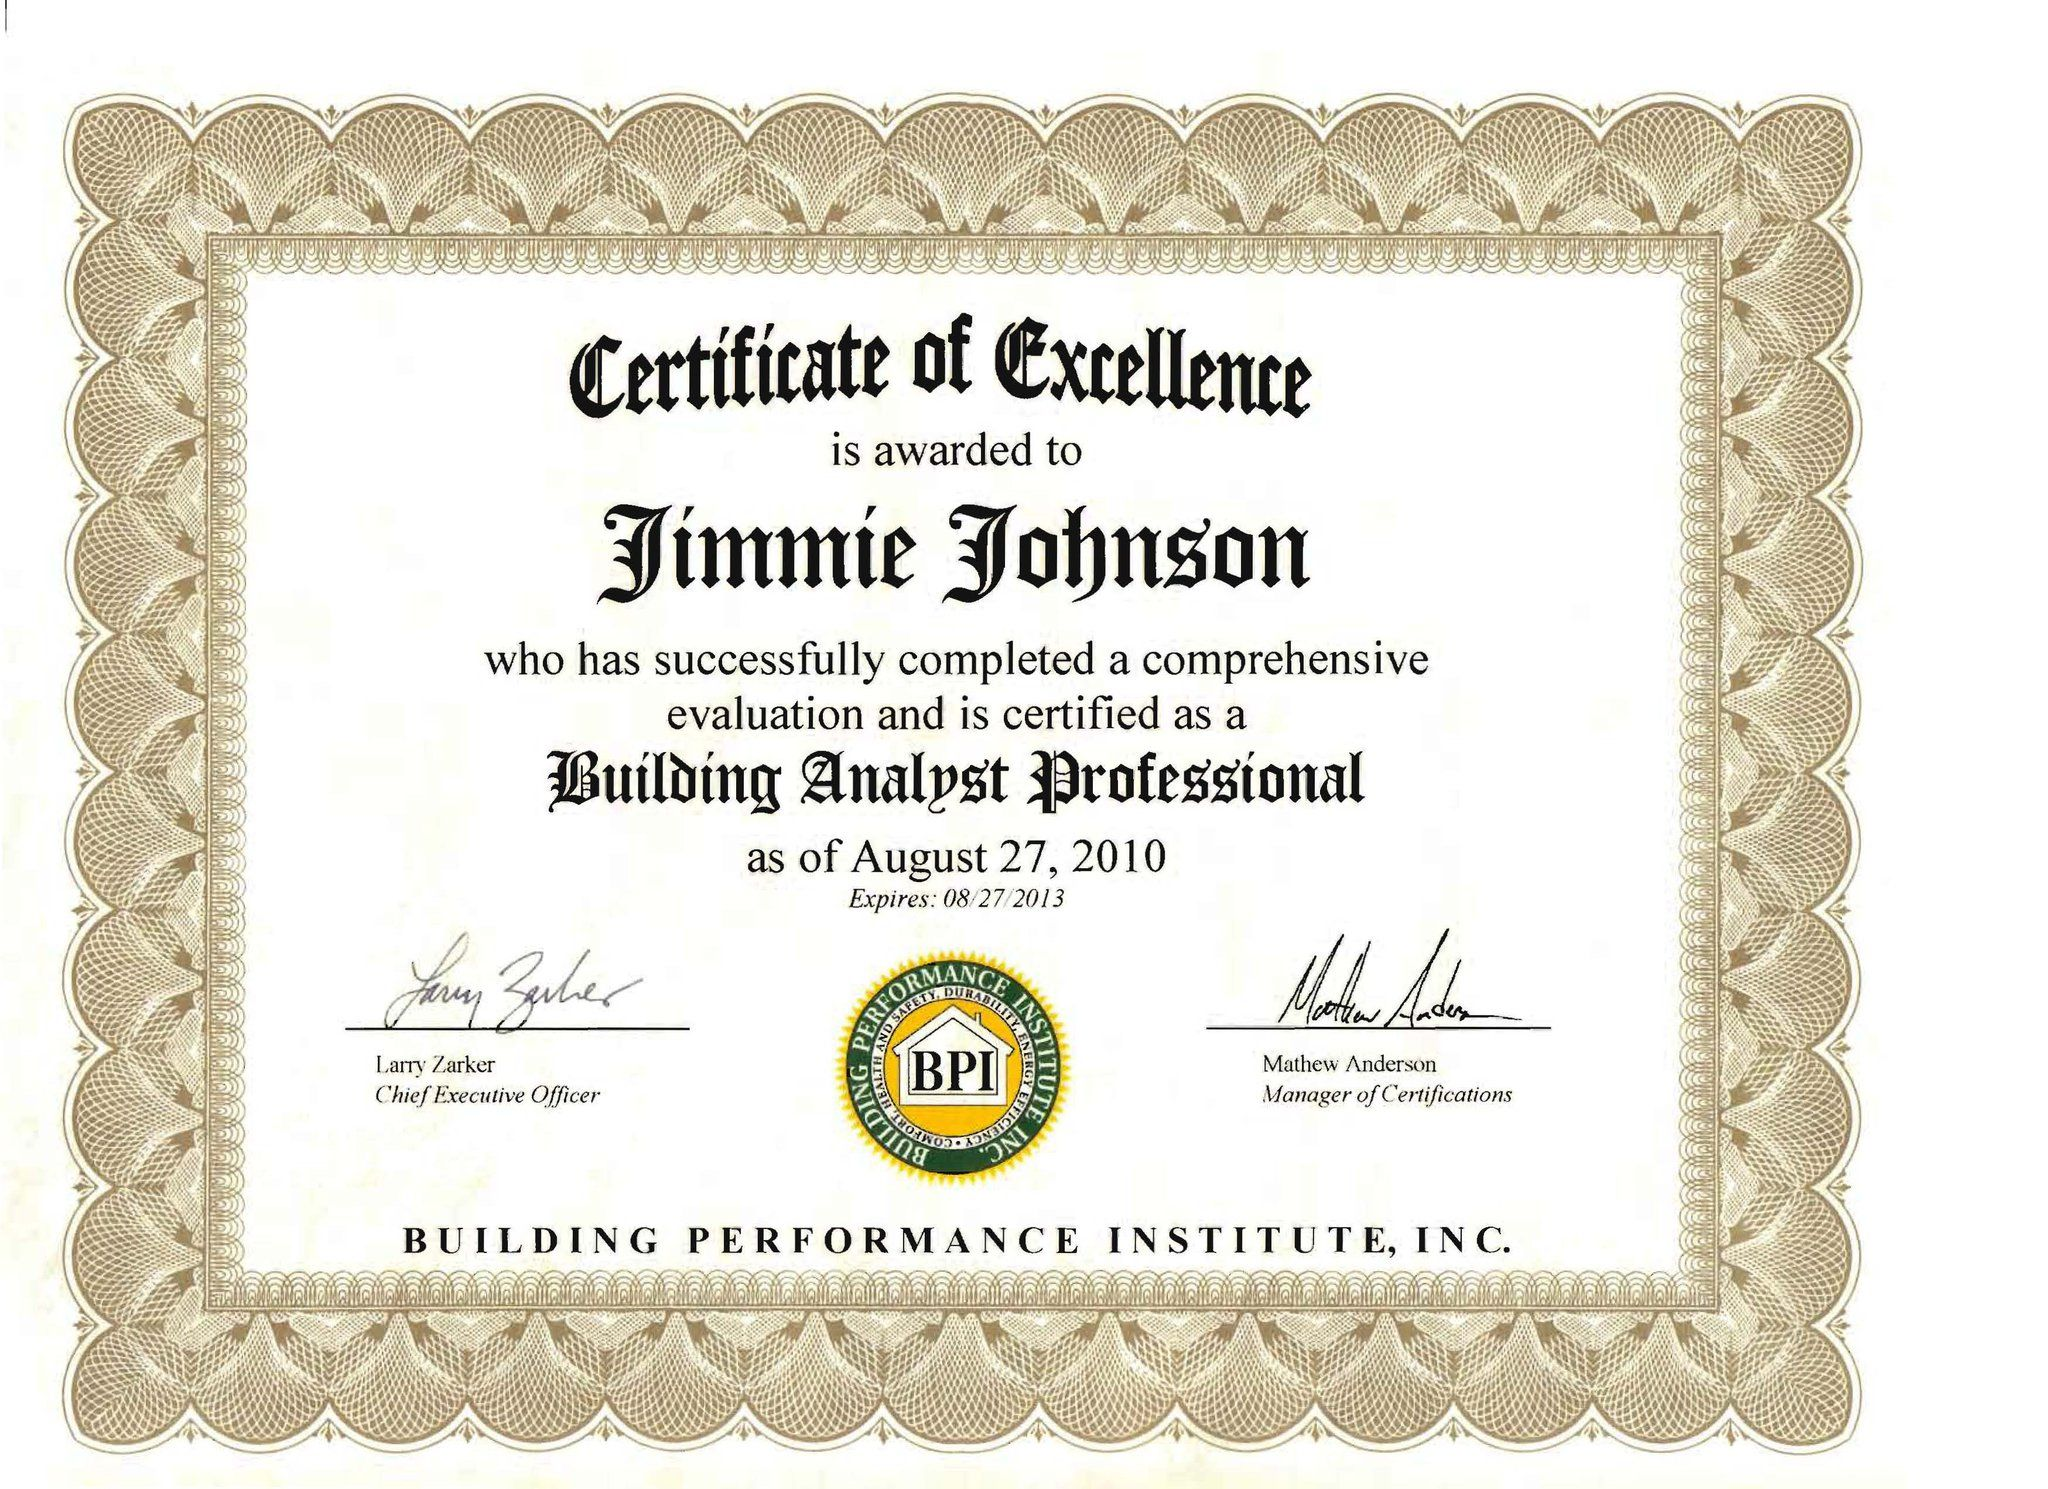 This is a copy of Jimmie Johnson's first BPI Certificate